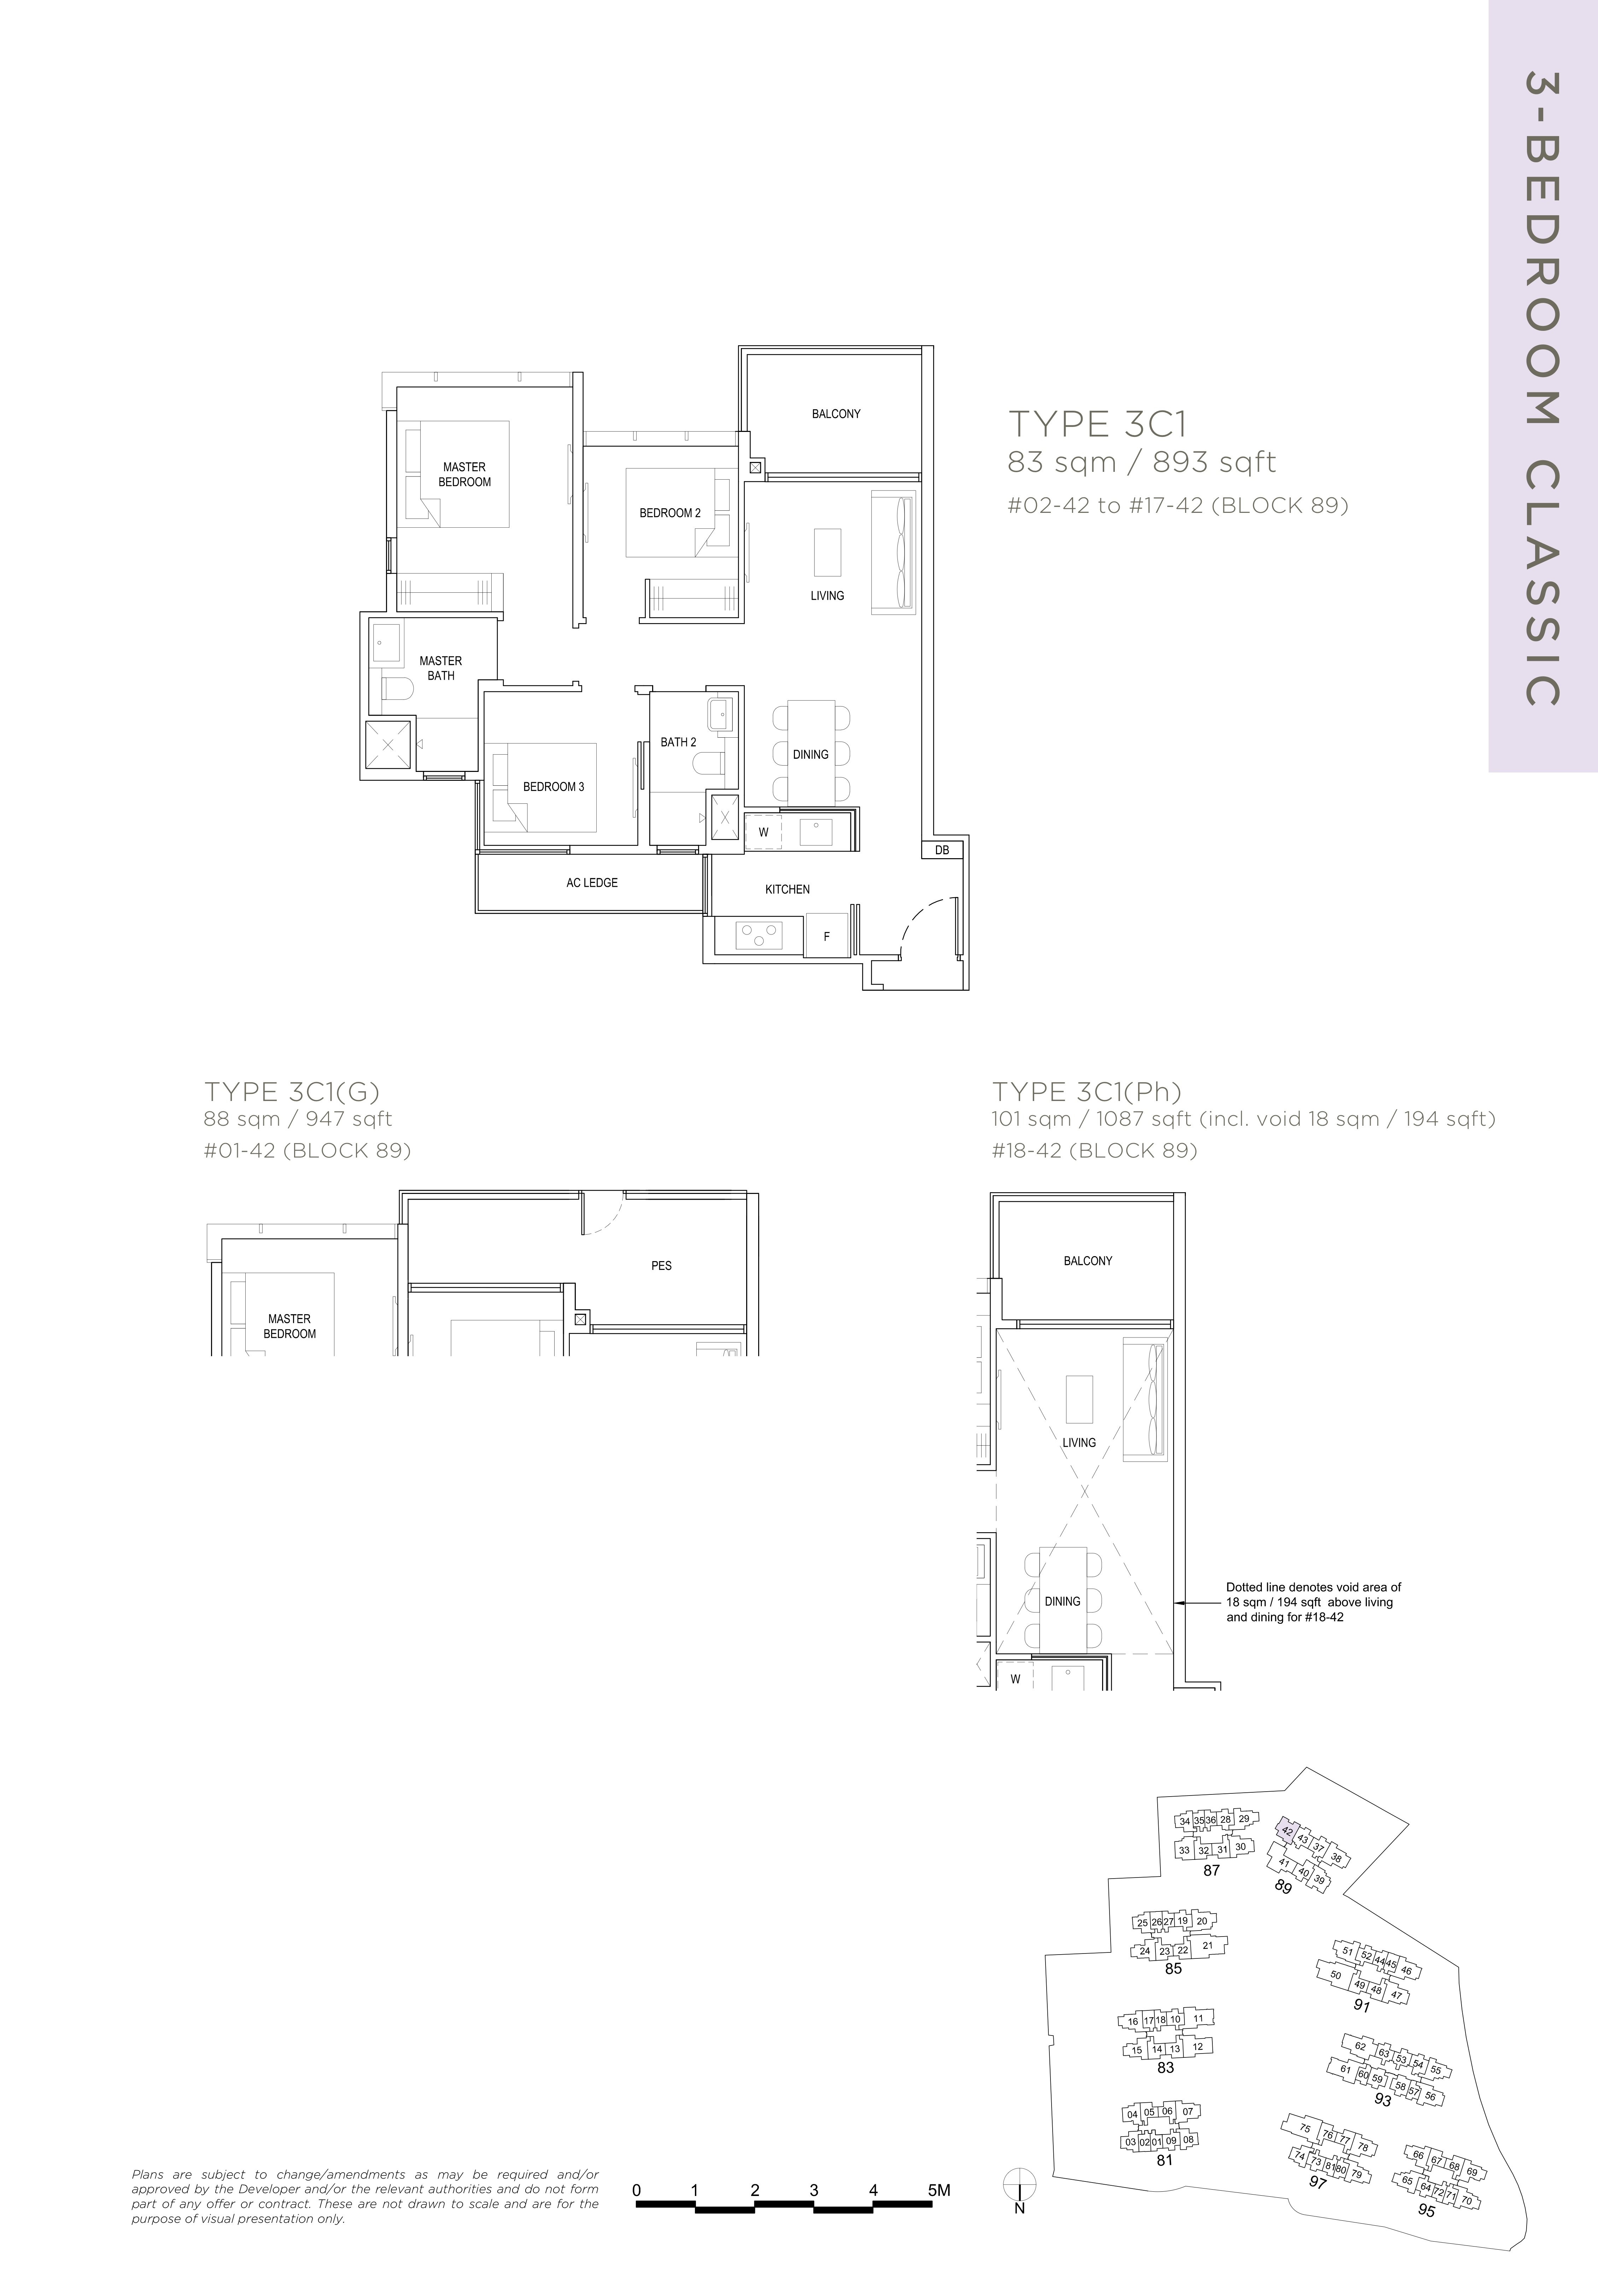 The Florence Residences 3-bedroom 3卧房 -3C1